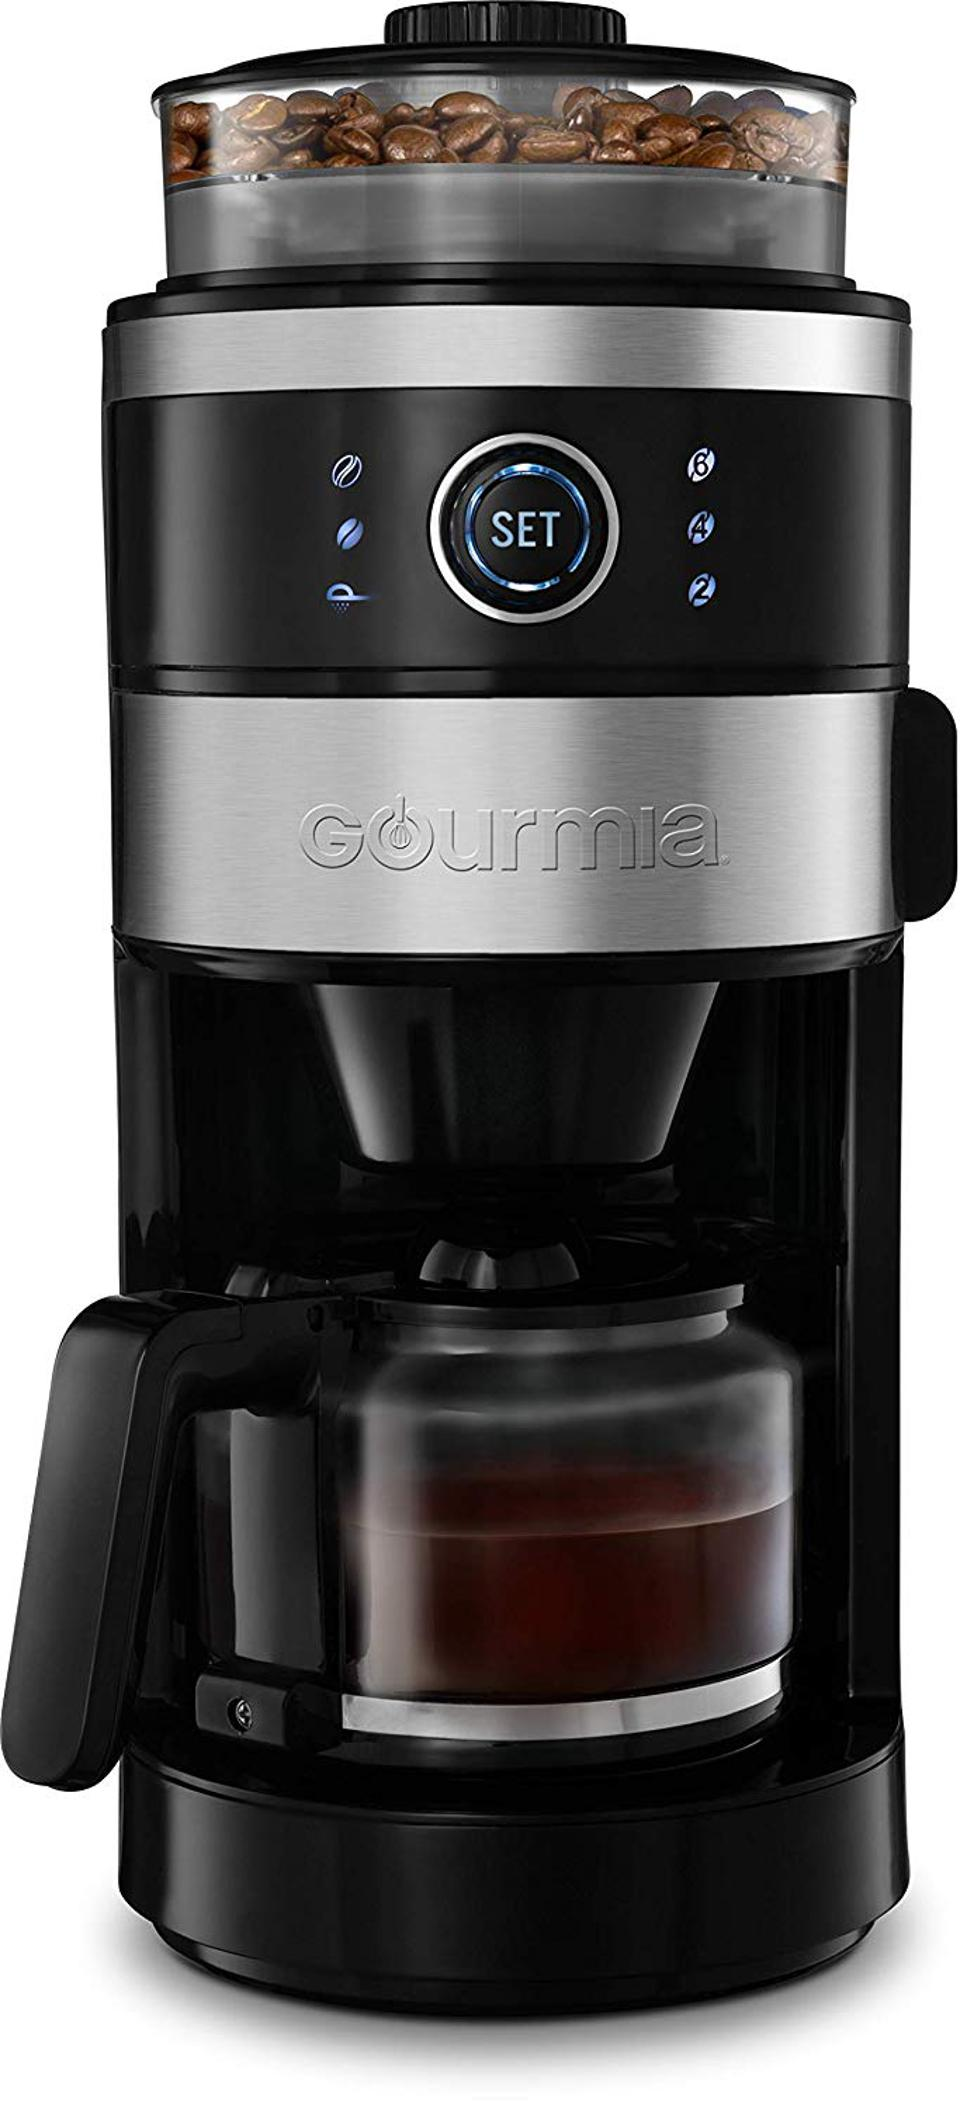 Gourmia Grind and Brew Coffee Maker